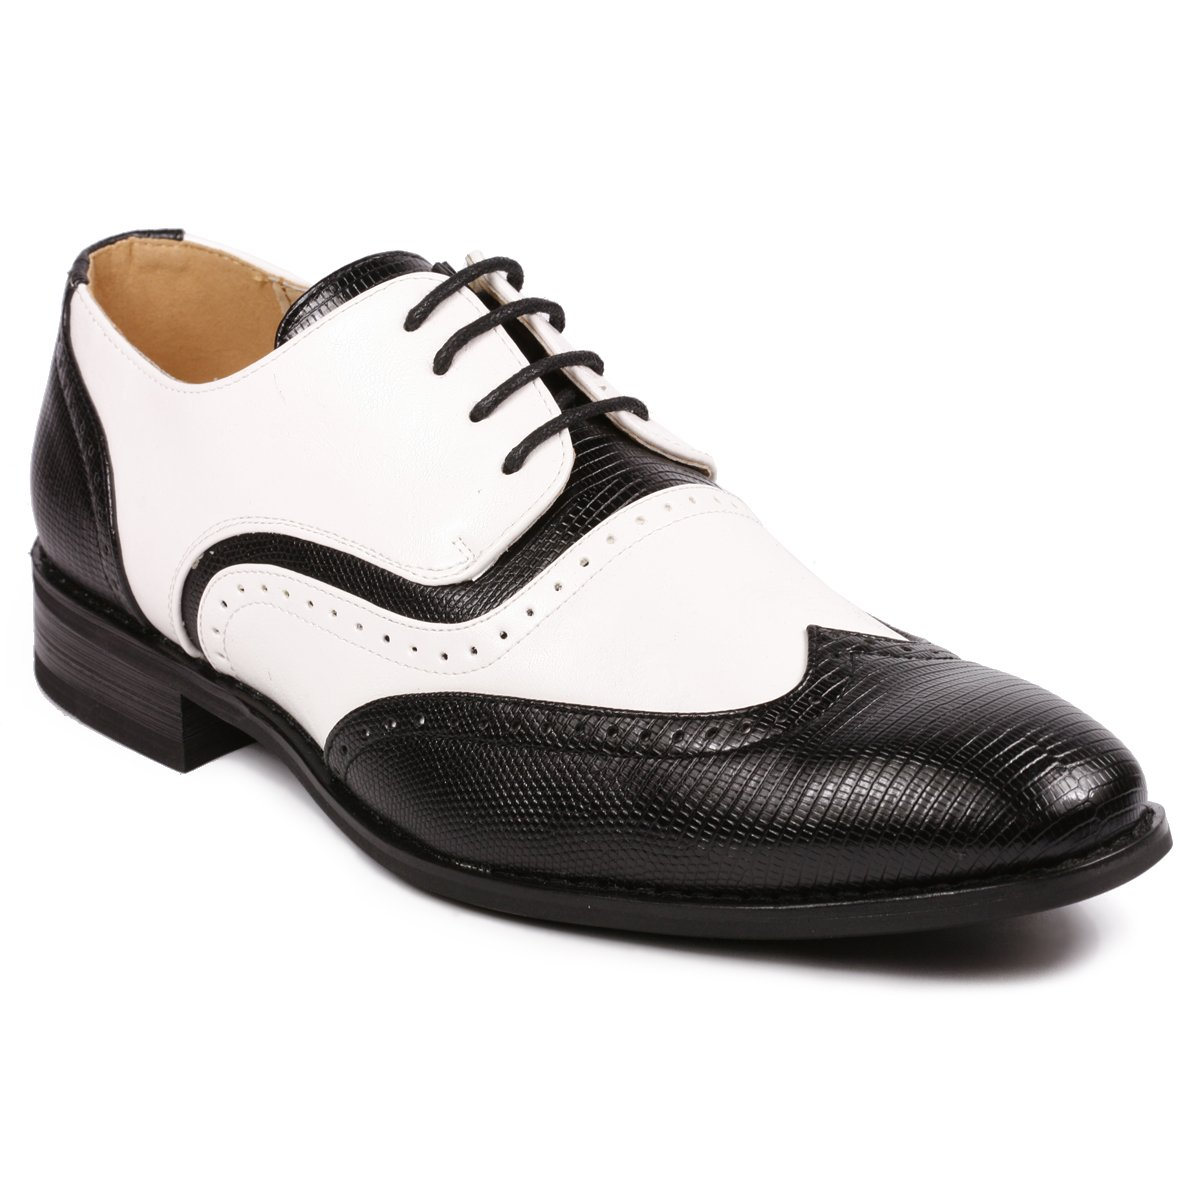 Men's 1920s Shoes History and Buying Guide Metrocharm MC113 Mens Wing Tip Perforated Lace Up Oxford Dress Shoes $39.99 AT vintagedancer.com